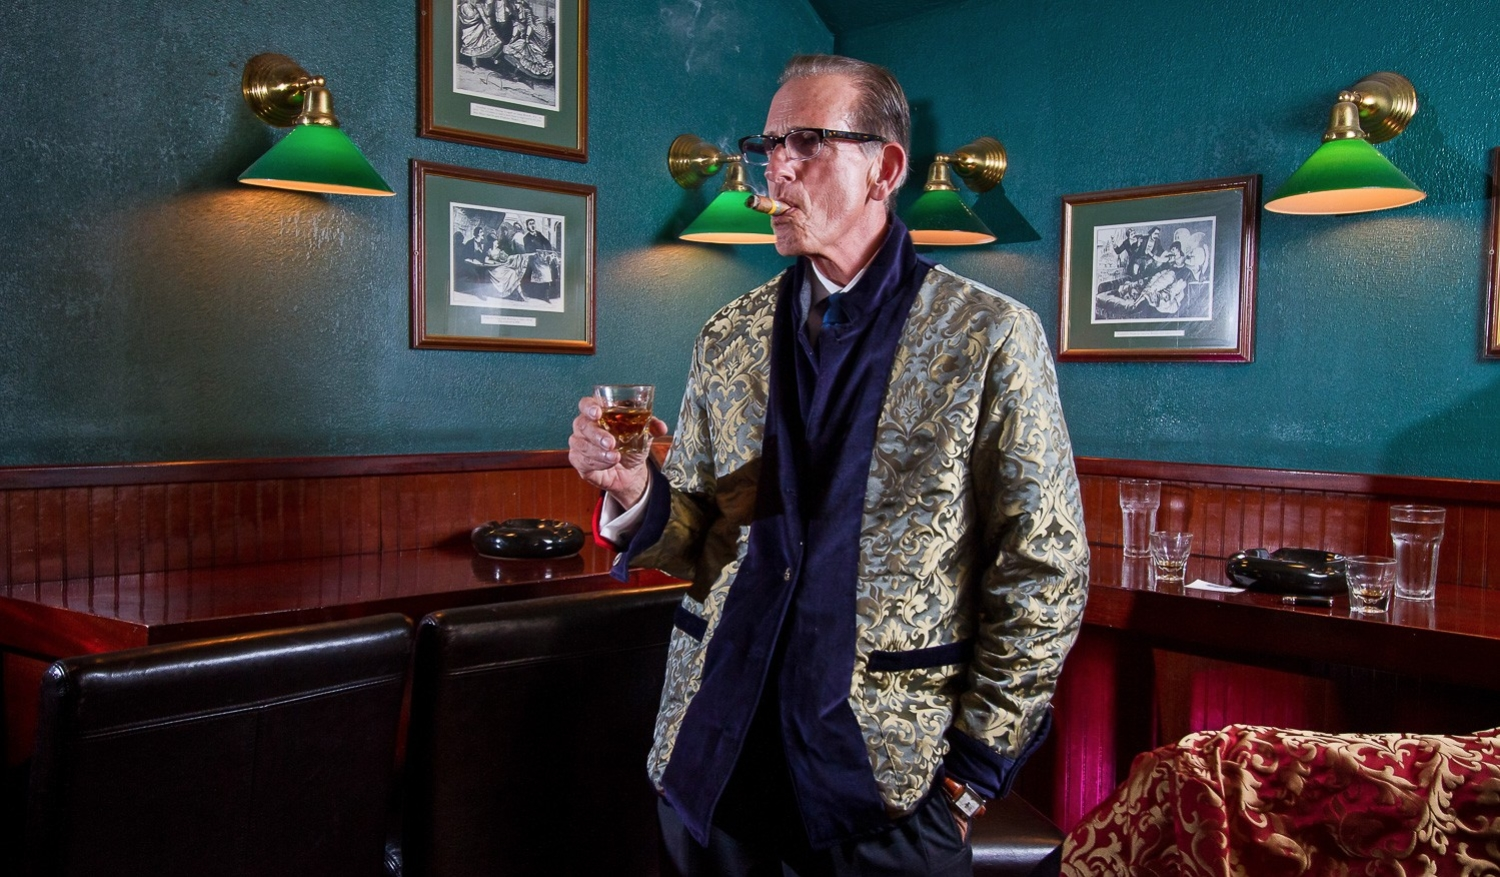 Betabrand reversible smoking jackets